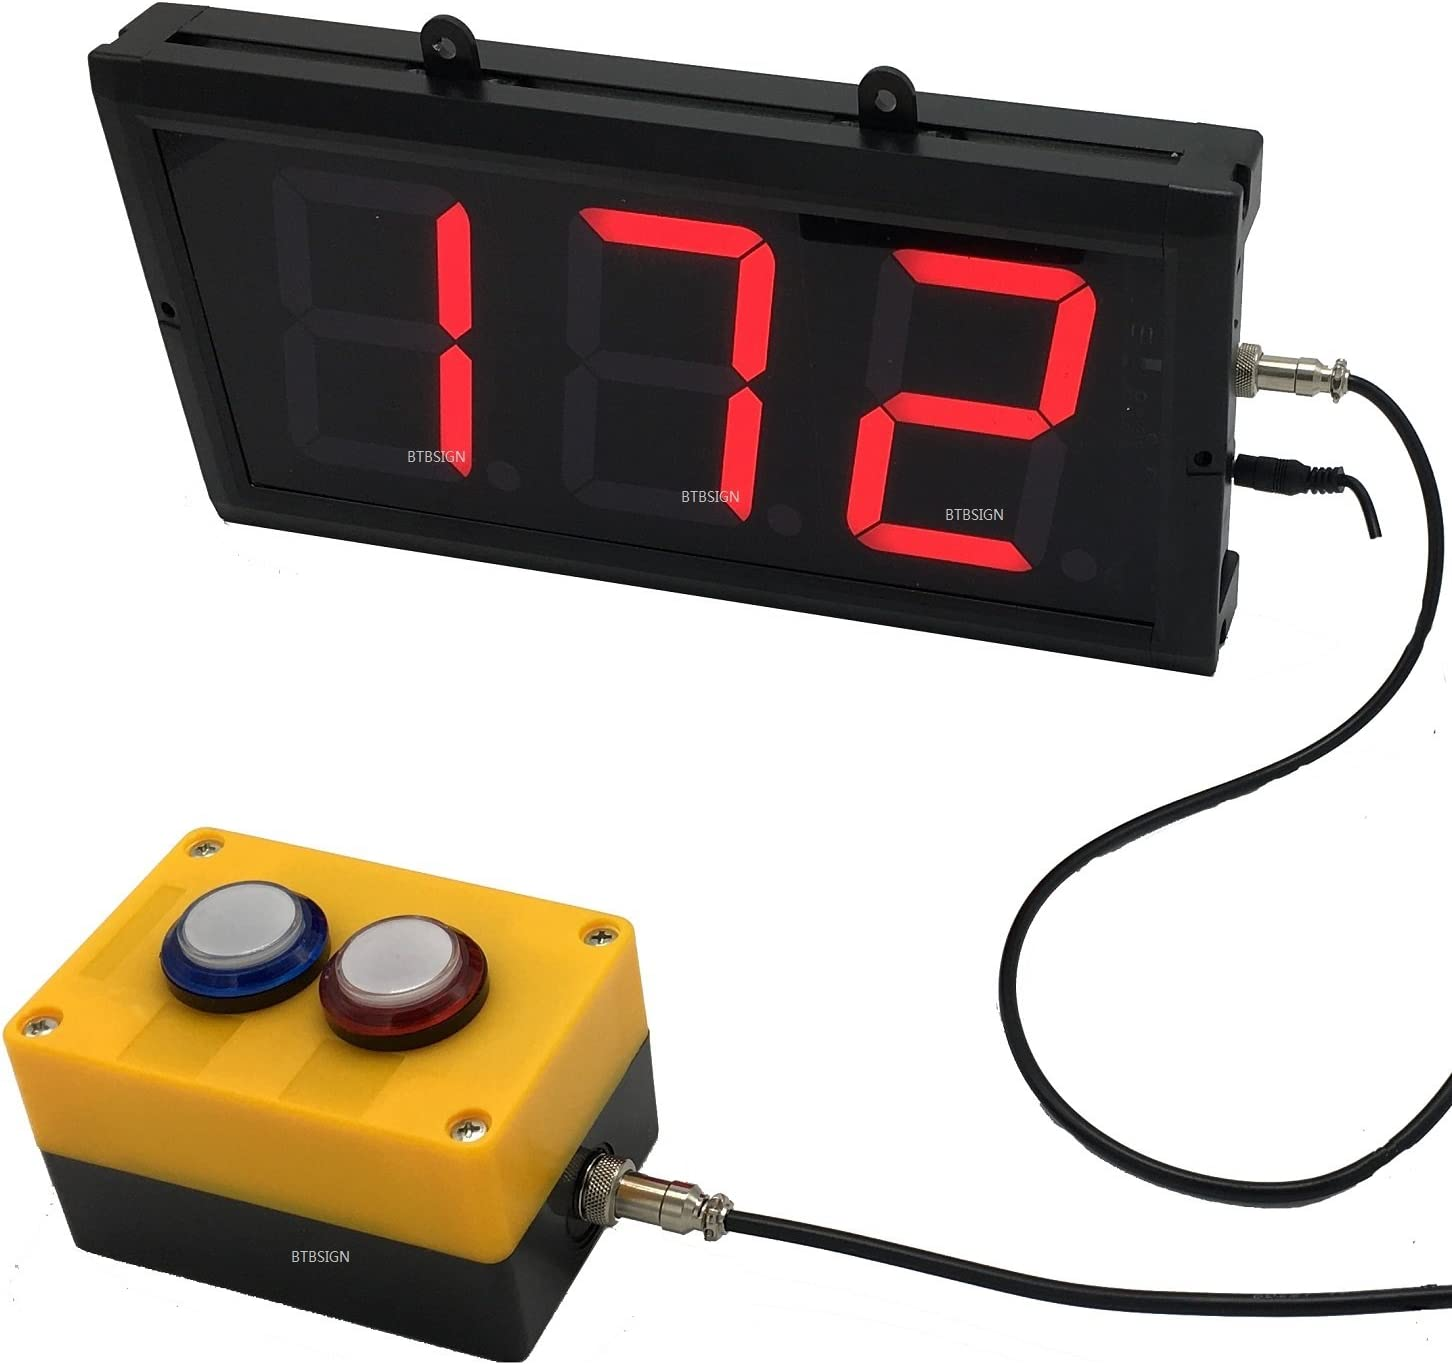 BTBSIGN LED Up/Down Counter with Switch Box & Remote Red 4'' LED Display (3Digits)